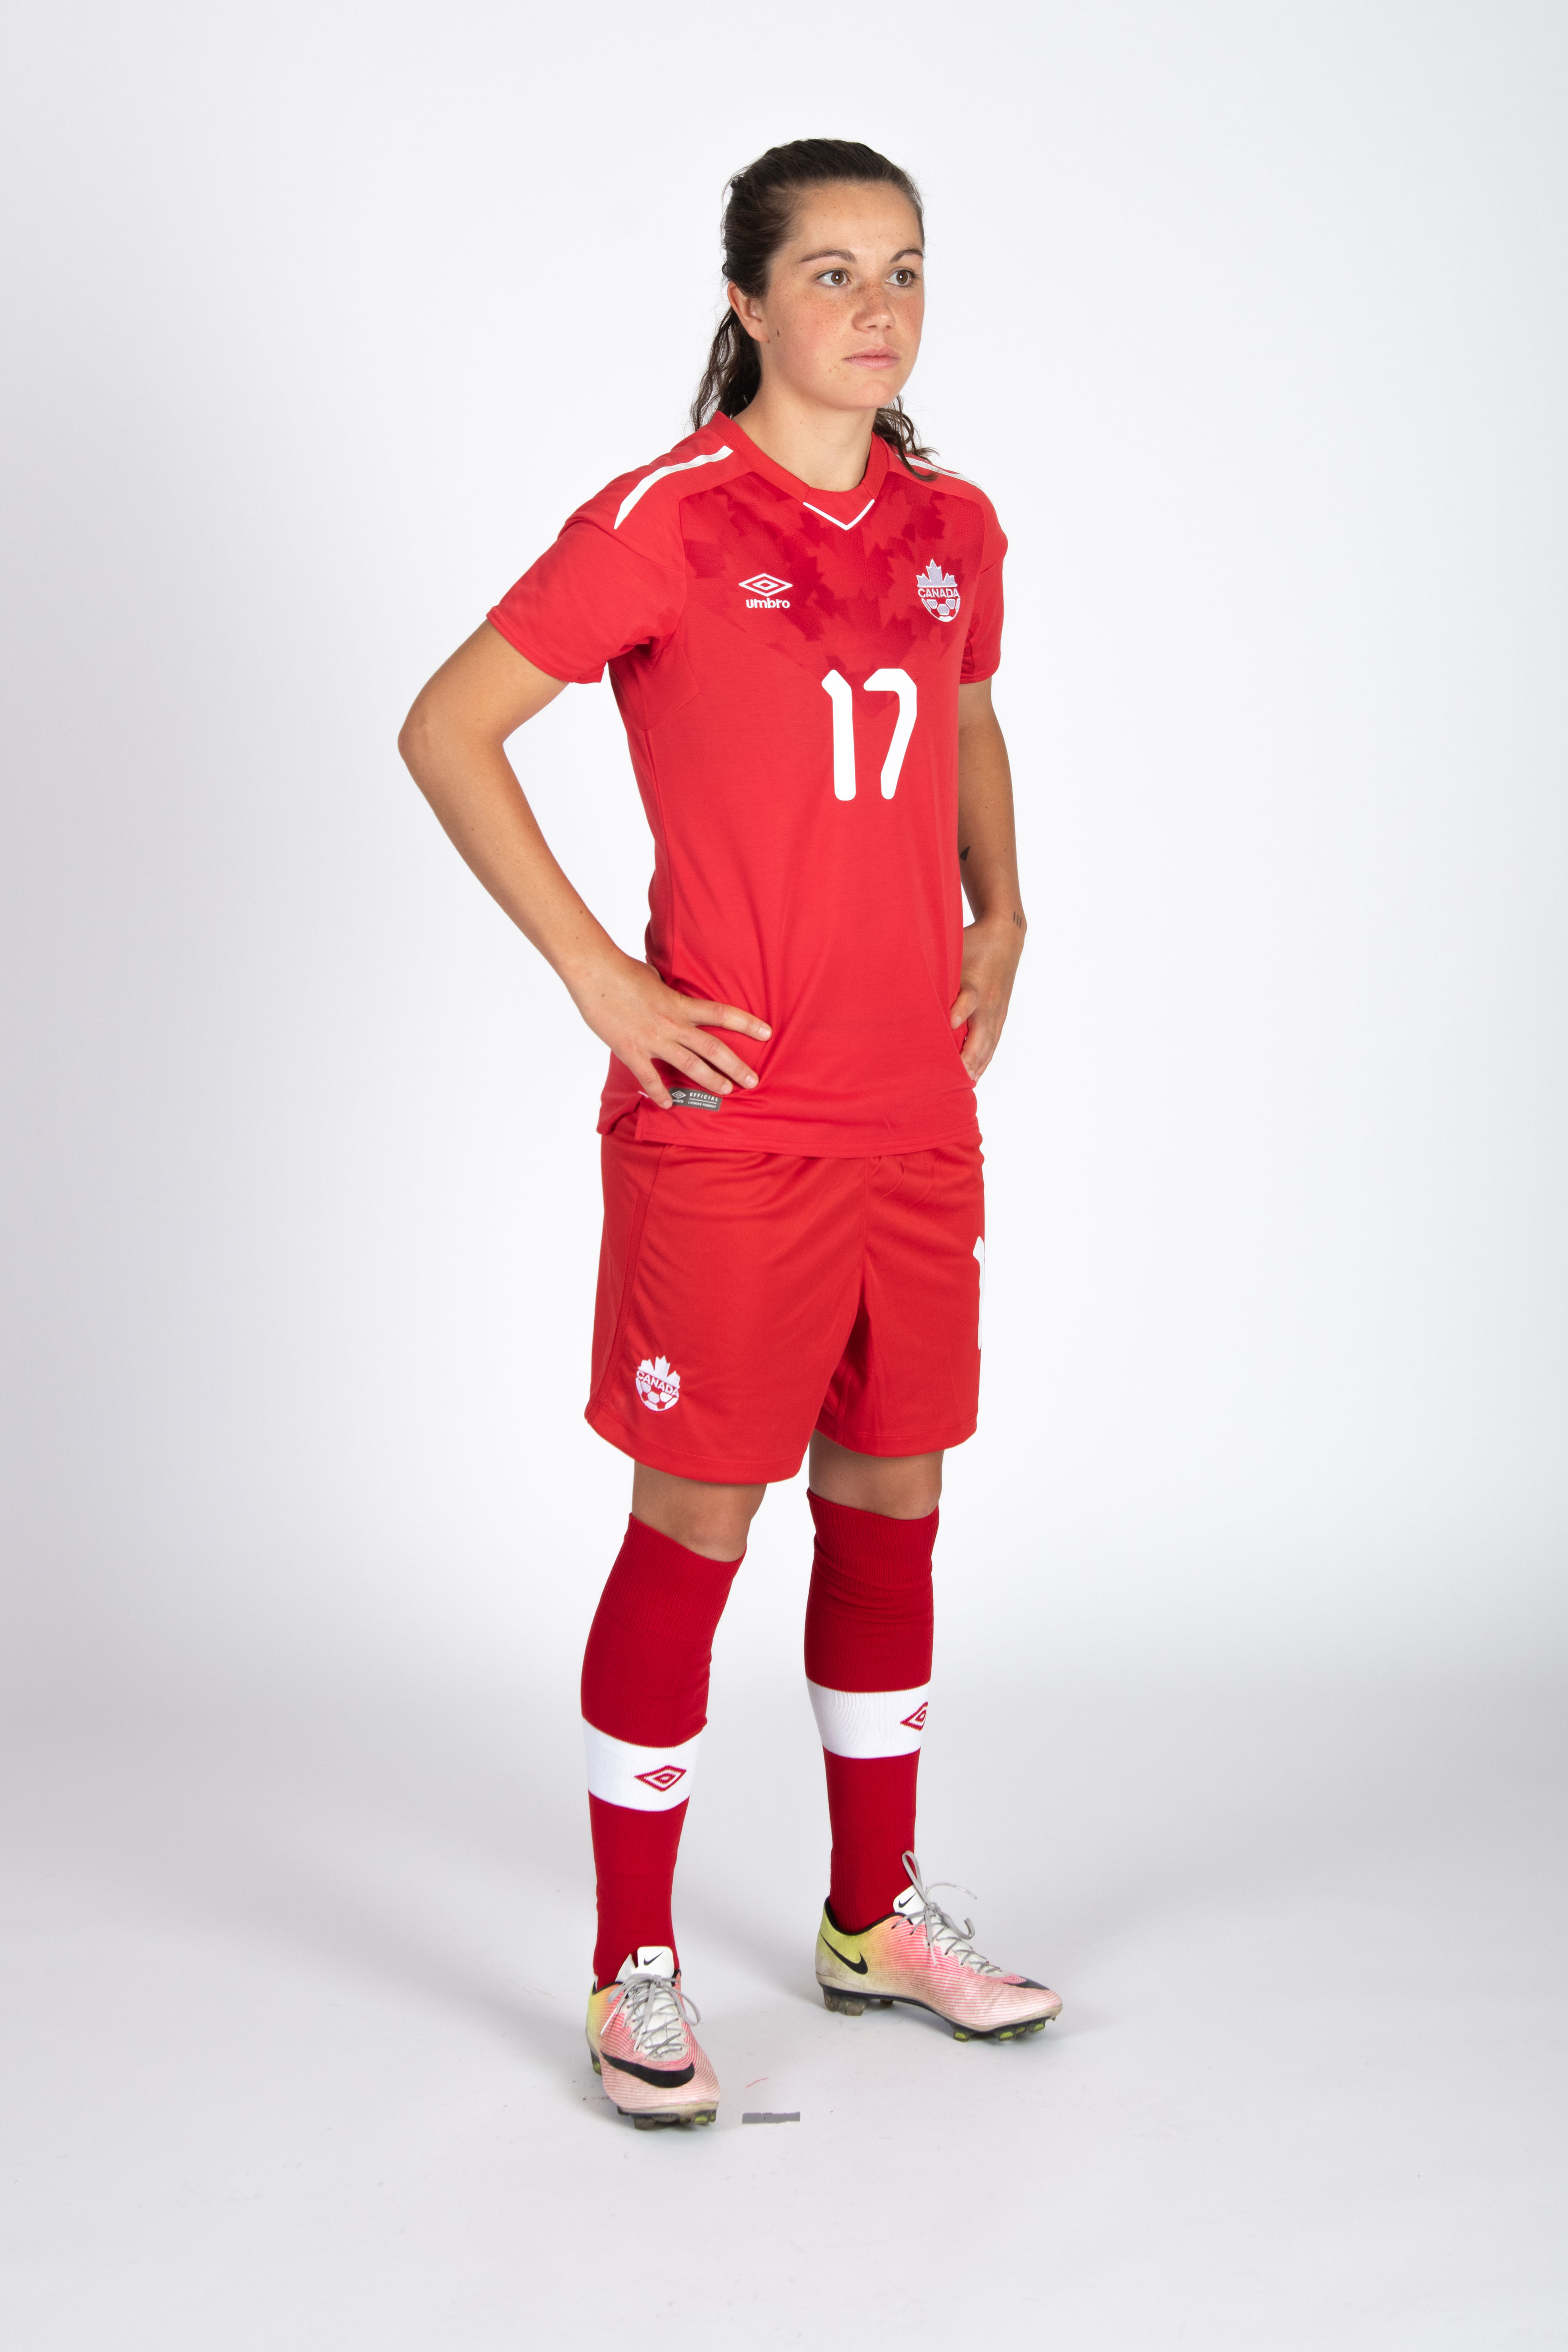 20180604_CANWNT_Fleming_byBazyl19